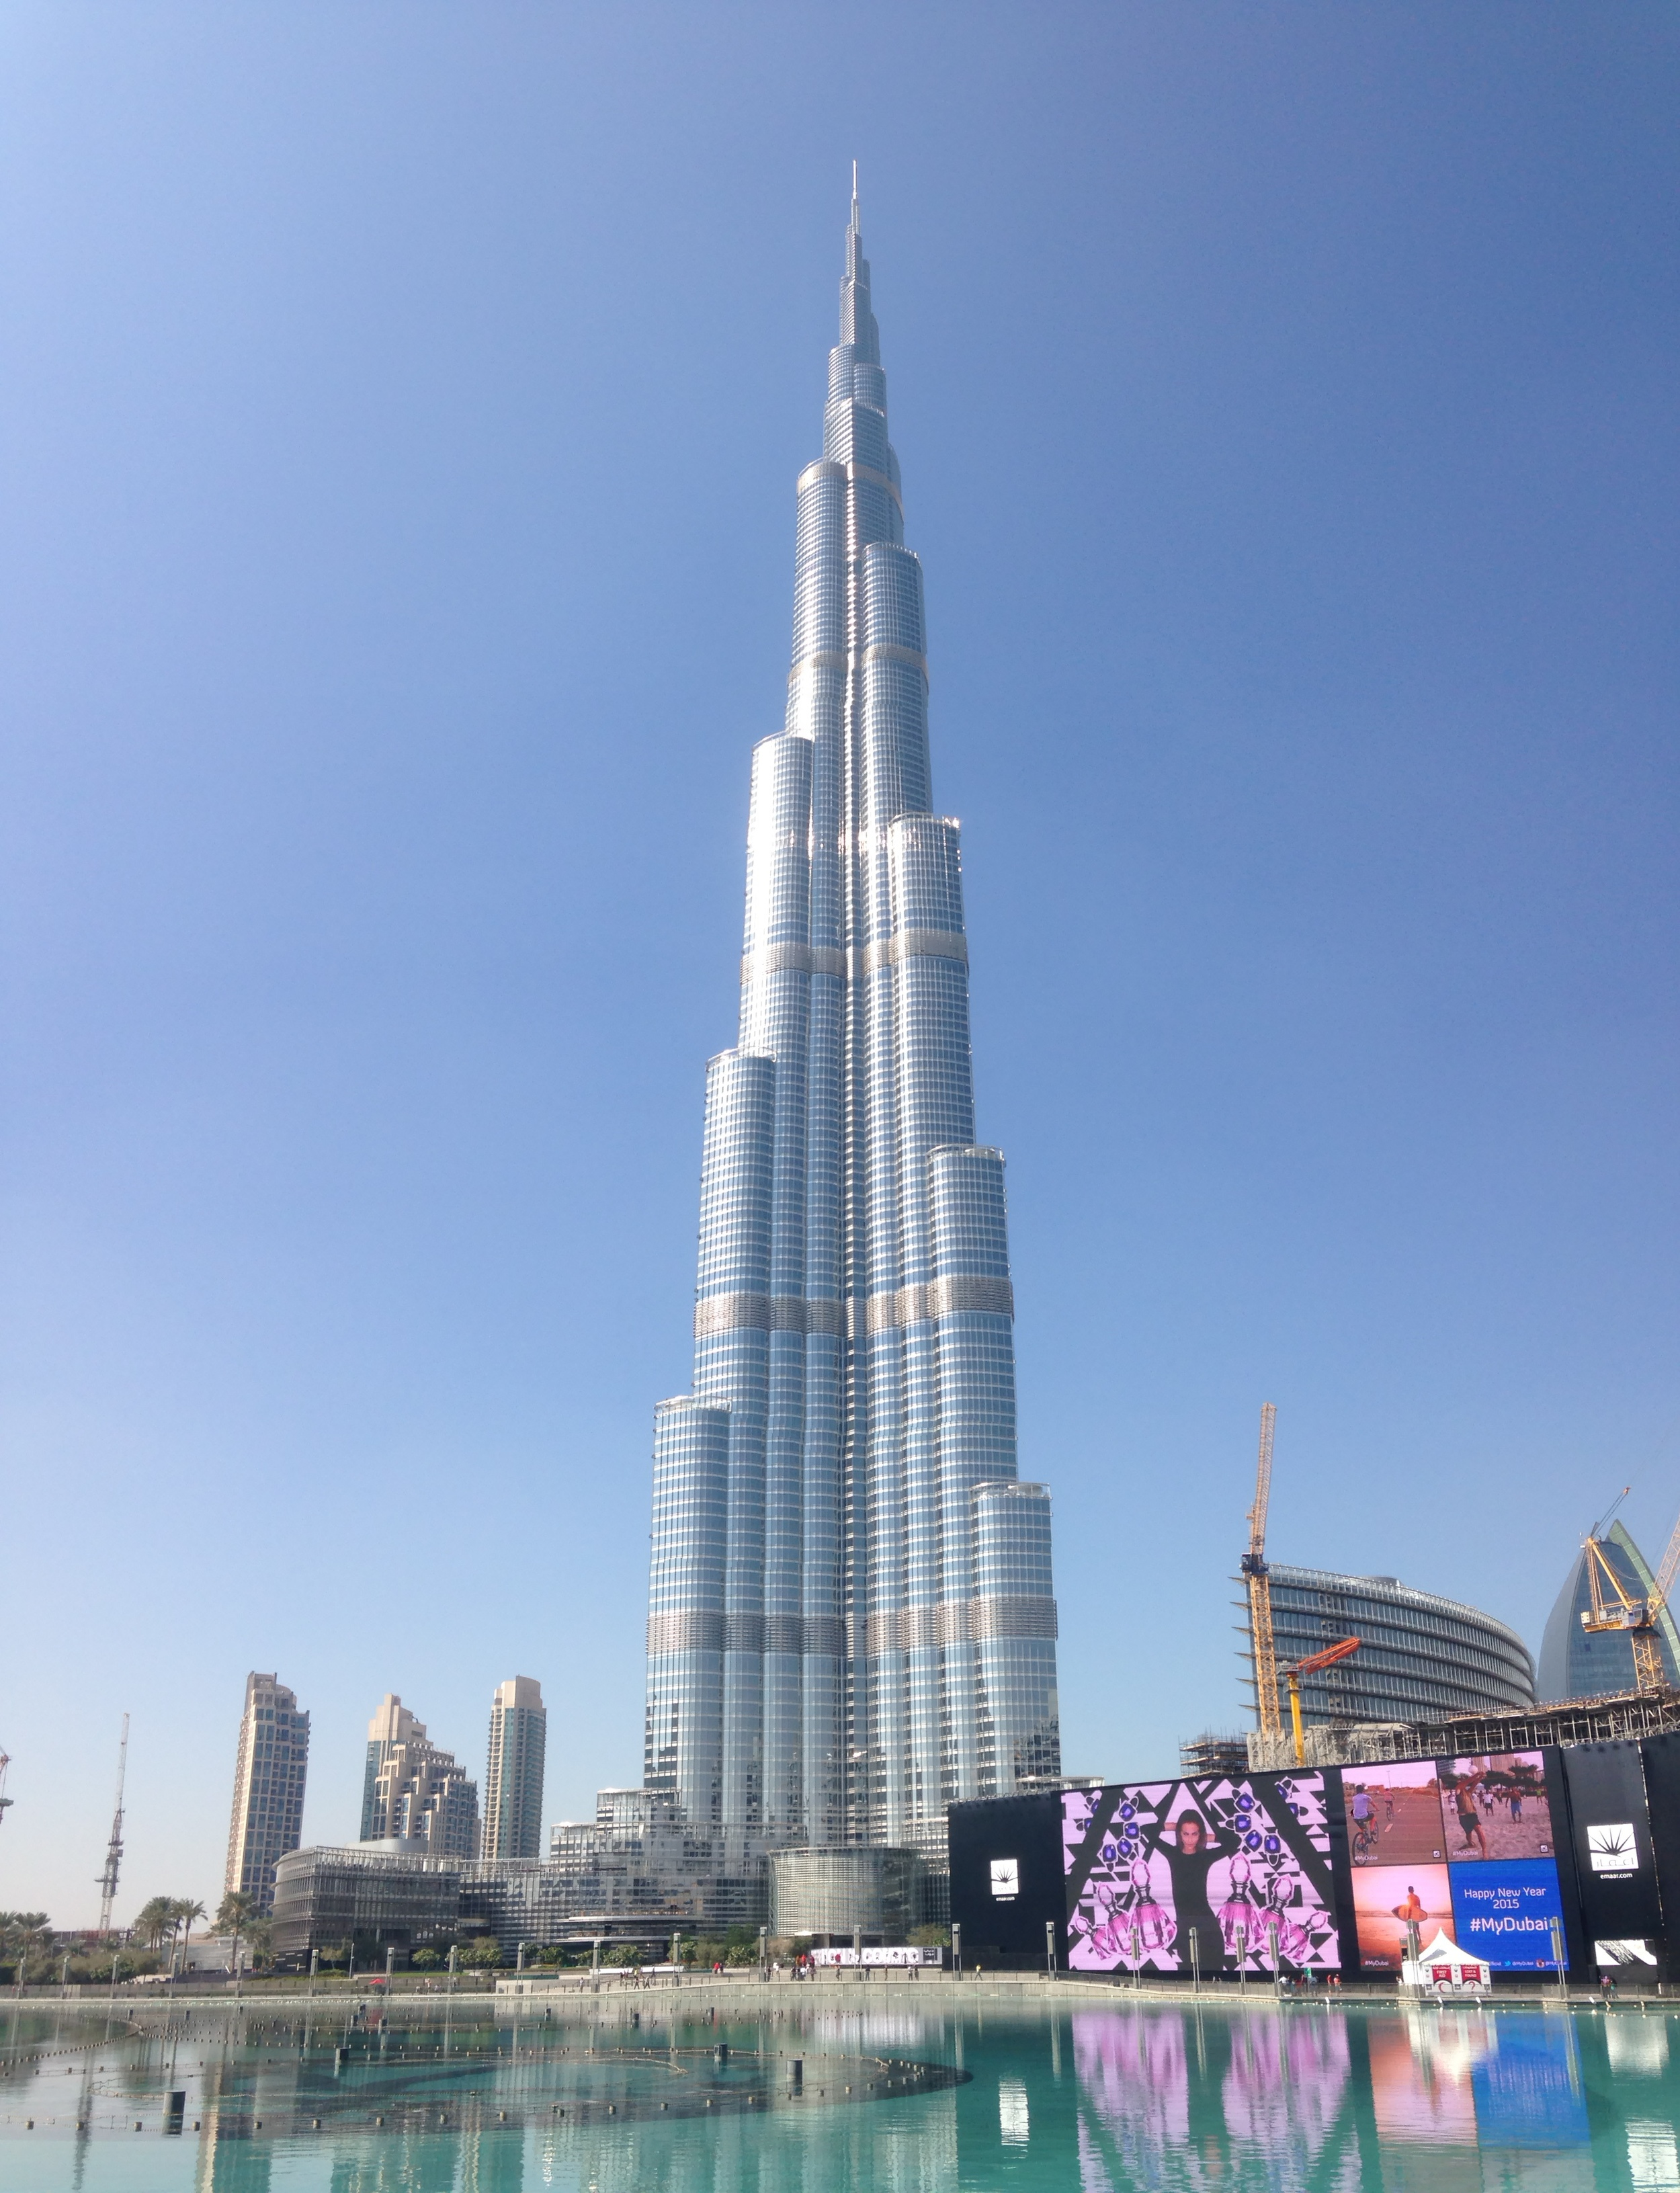 The Burj Khalifa - I had to use the panoramic mode in order to fit the whole thing in the picture.